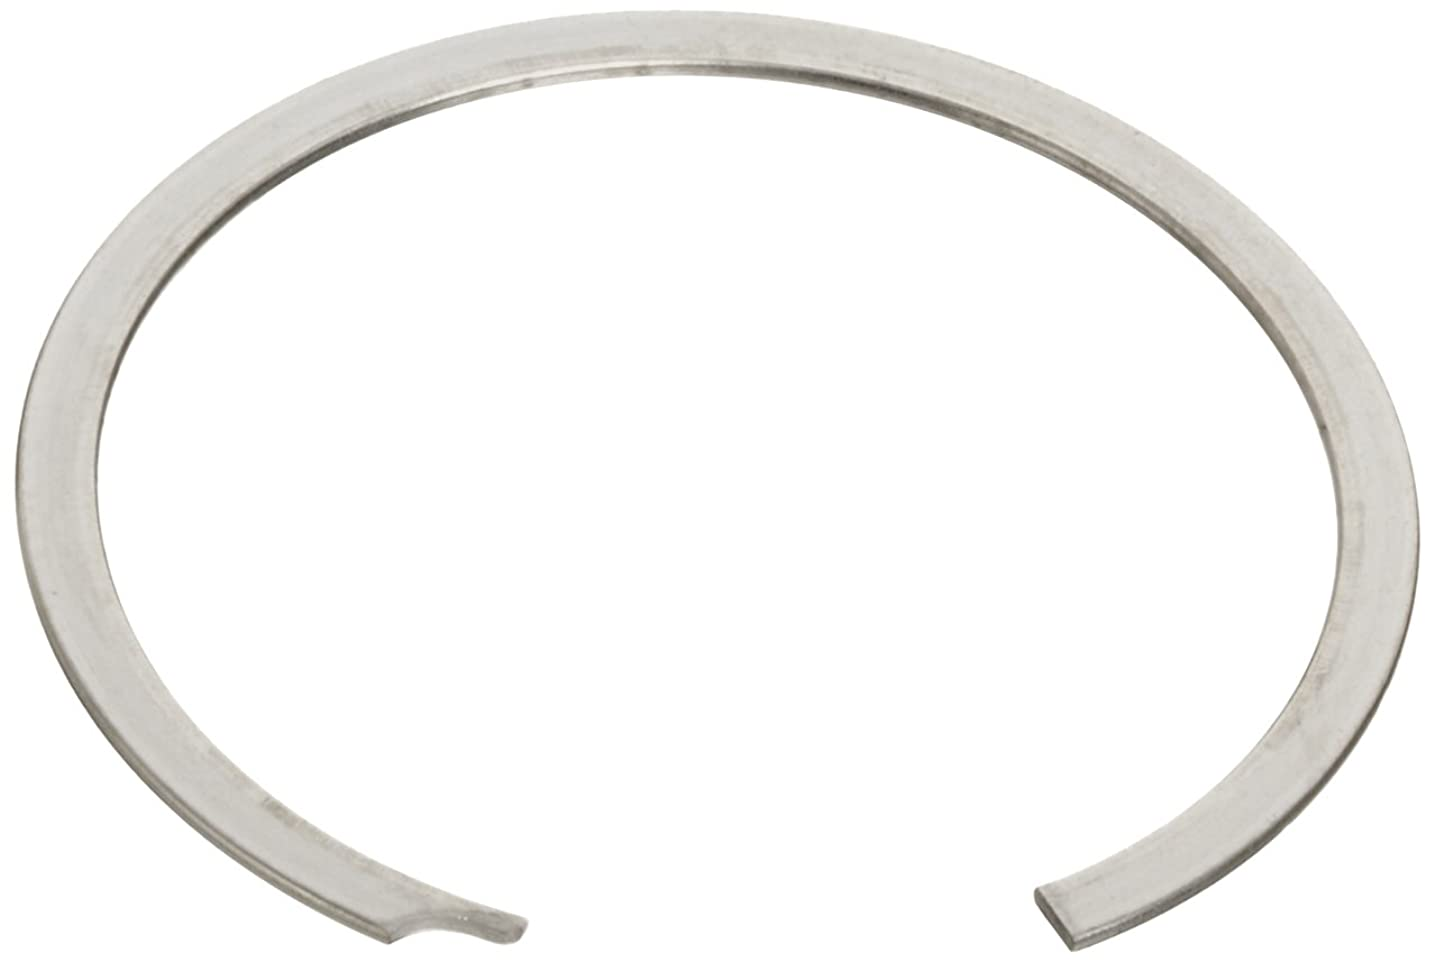 Standard Internal Retaining Ring, Spiral, 302 Stainless Steel, Passivated Finish, 1-3/4